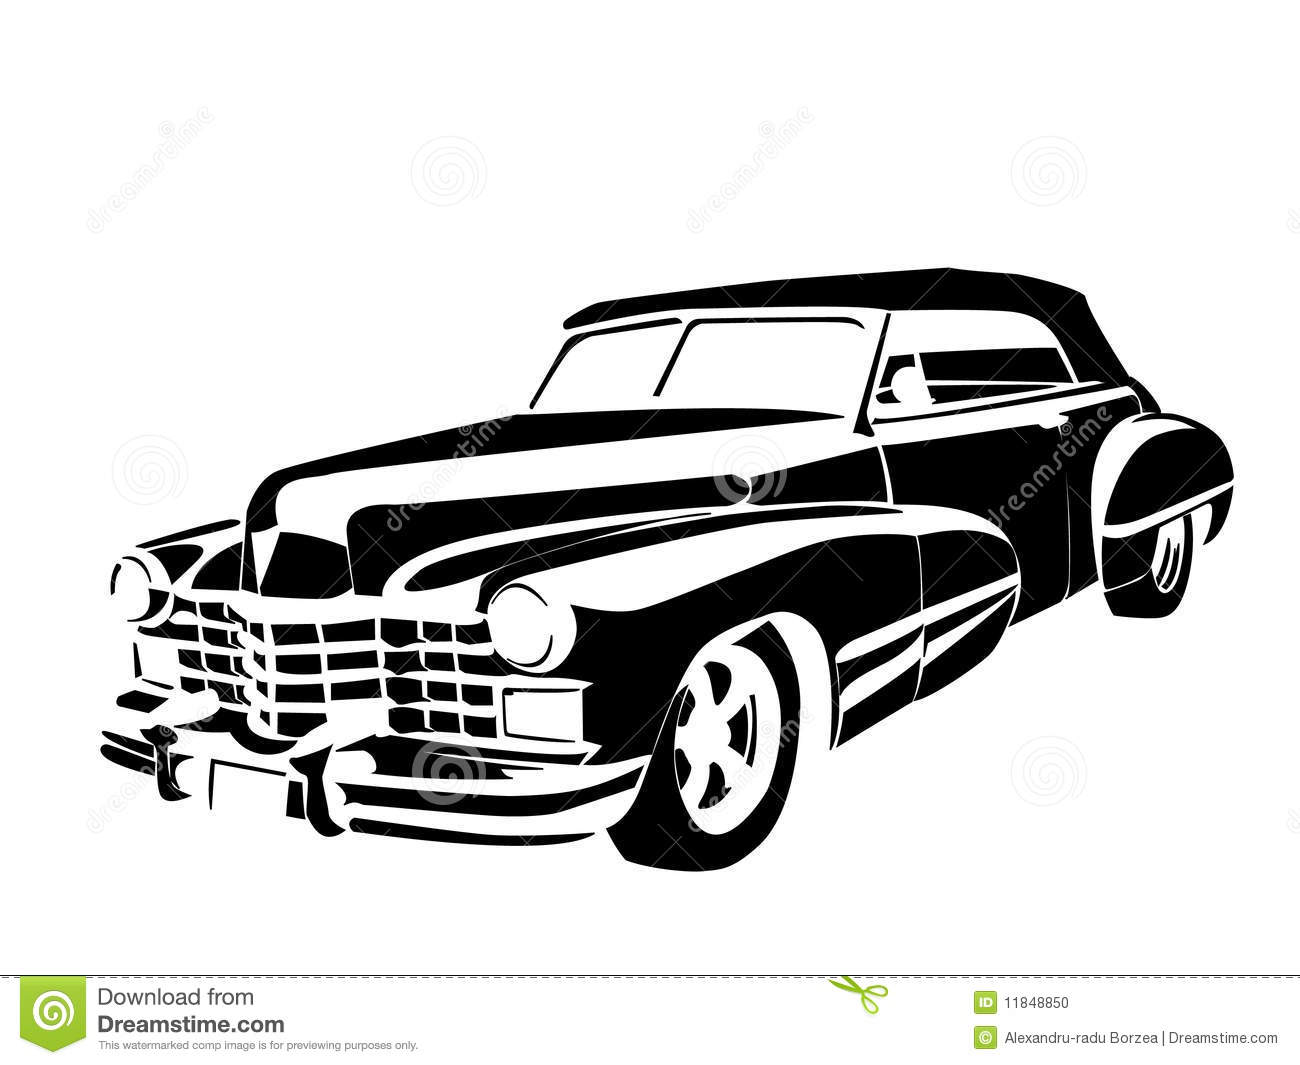 Race Car clipart classic car In old cars Old Old